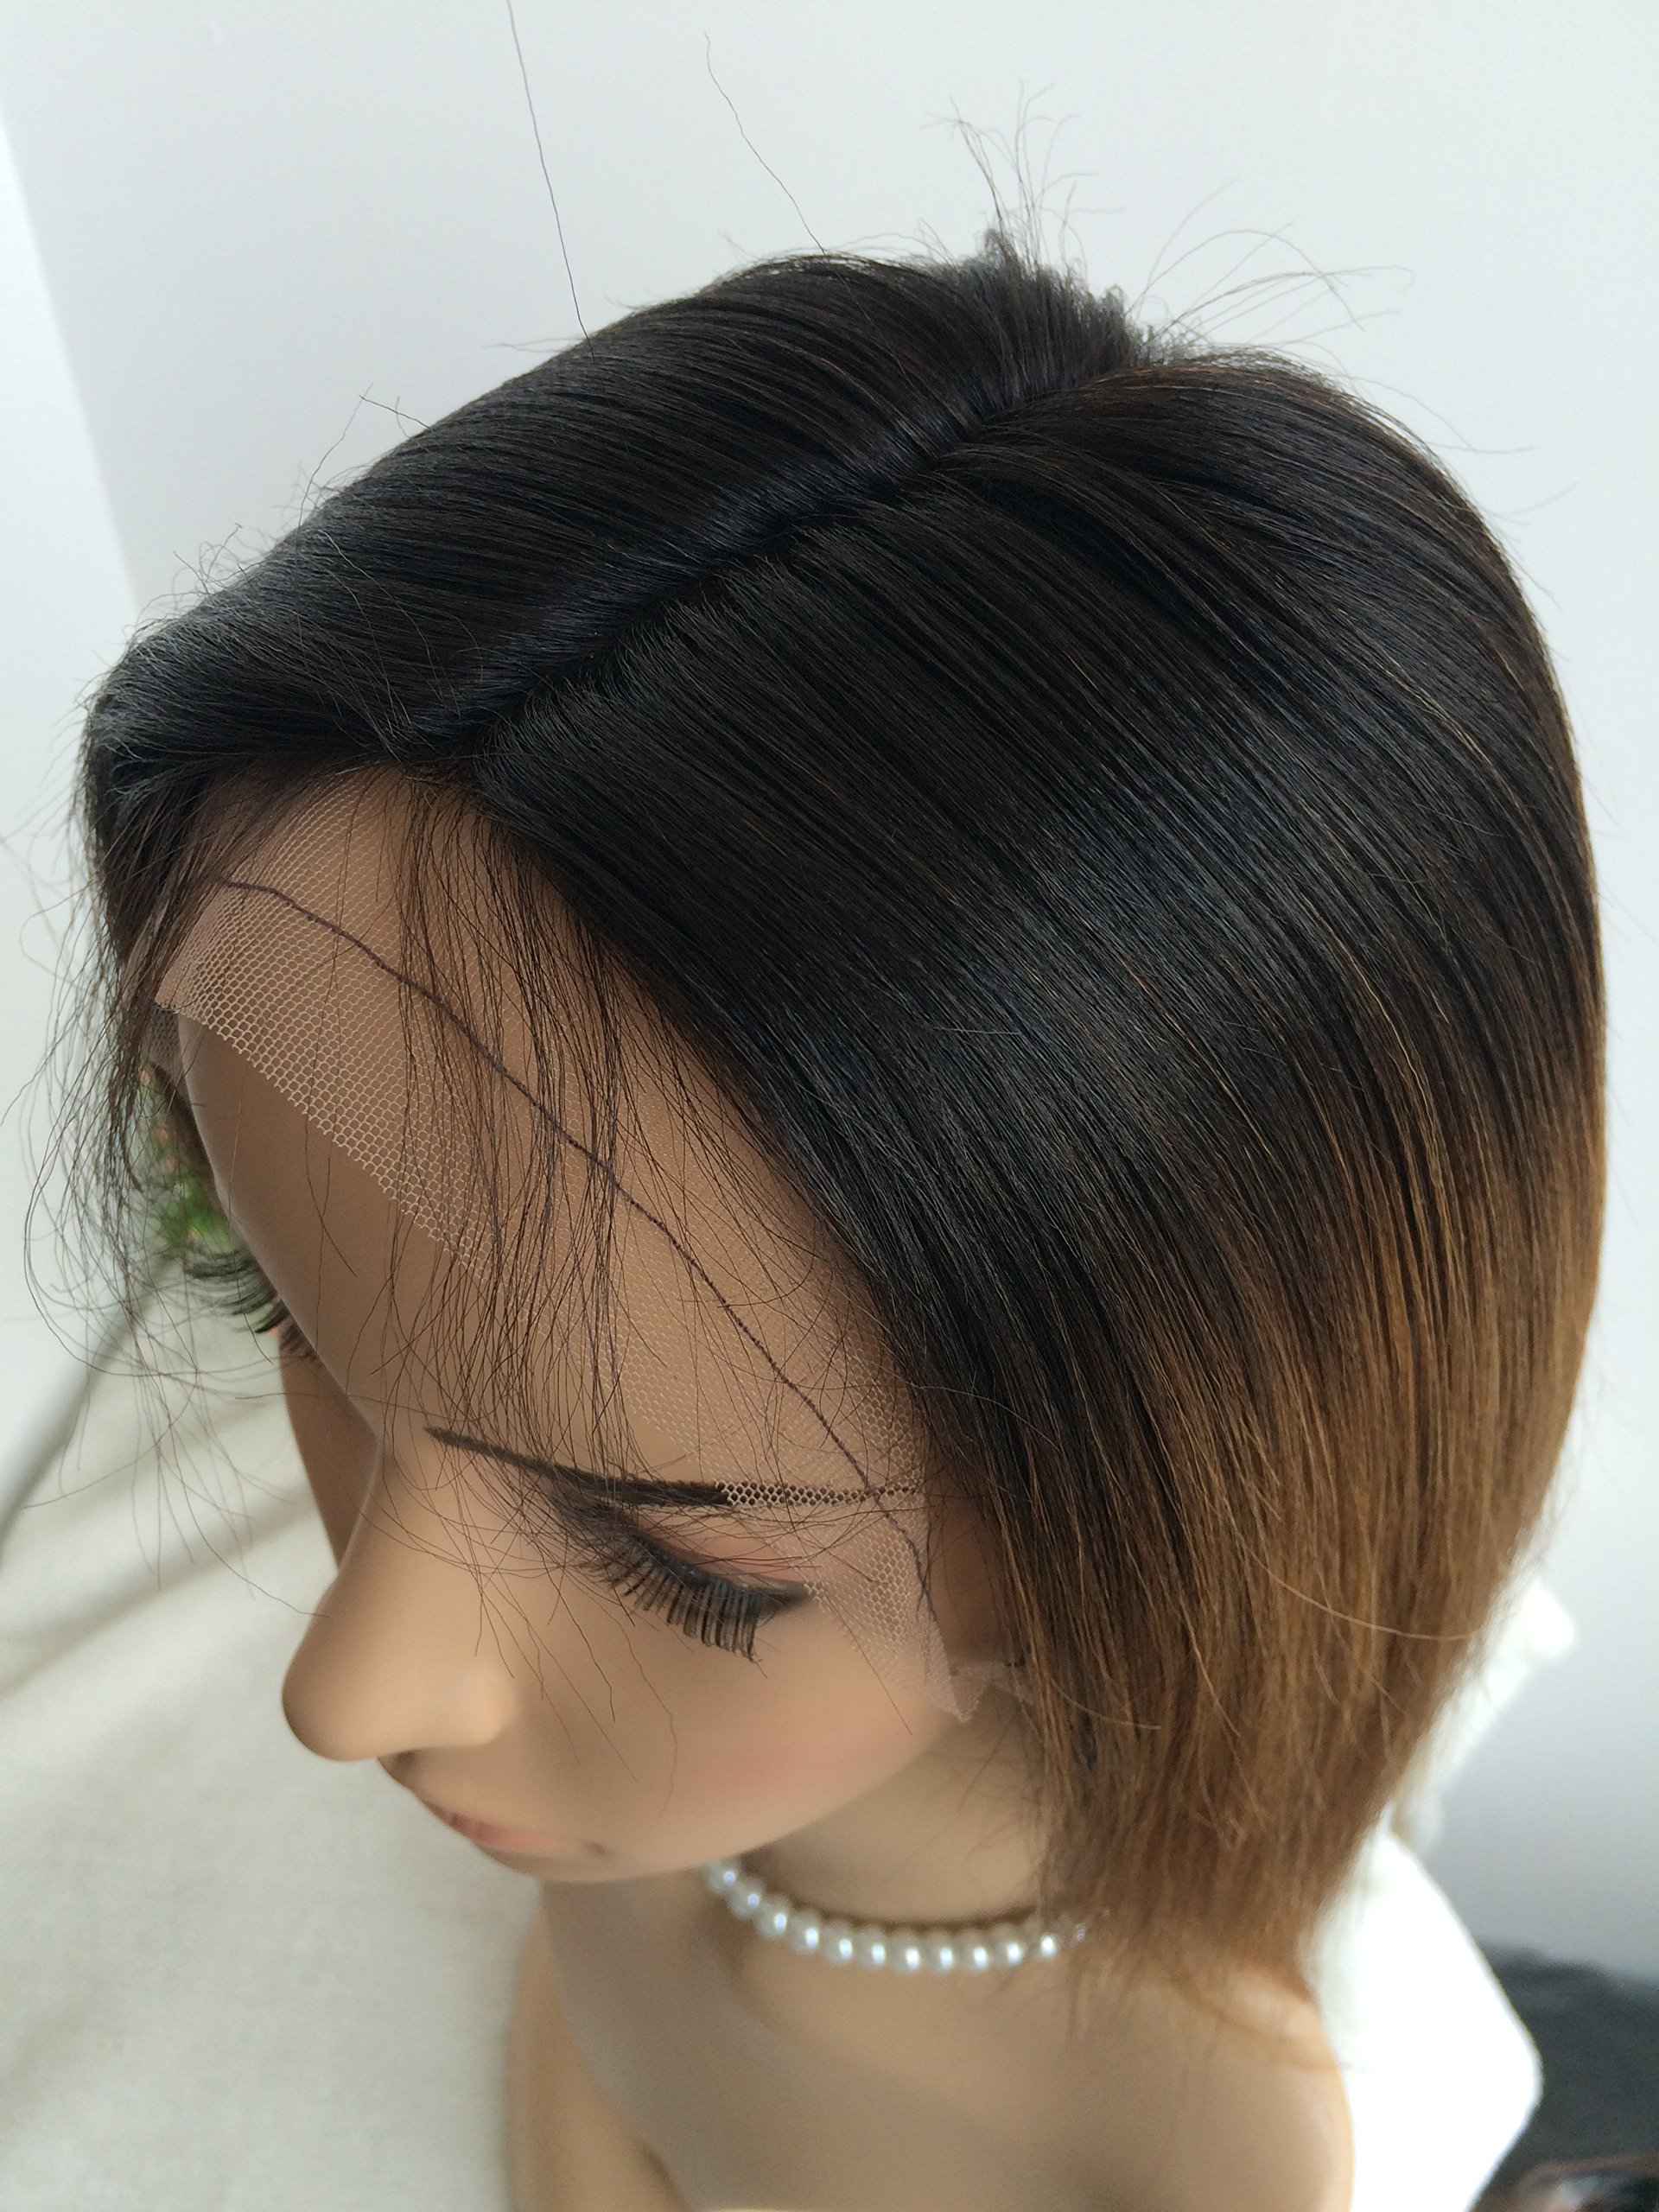 CHINESE VIRGIN 10 INCH,LIGHT YAKI,FULL LACE WIGS SILK TOP,BLEACHED KNOTS--hot sale product!!! by April silk top wigs (Image #7)